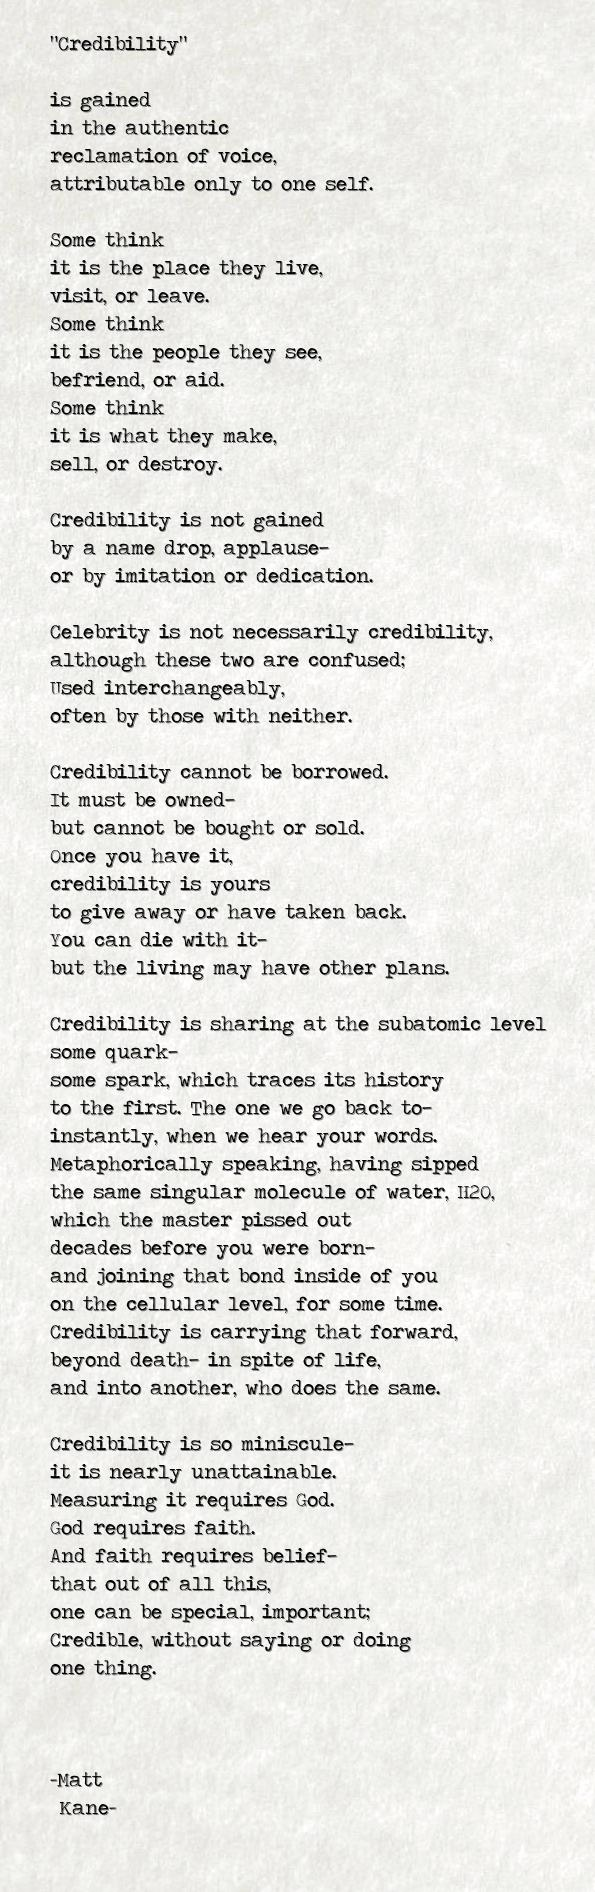 Credibility - a poem by Matt Kane